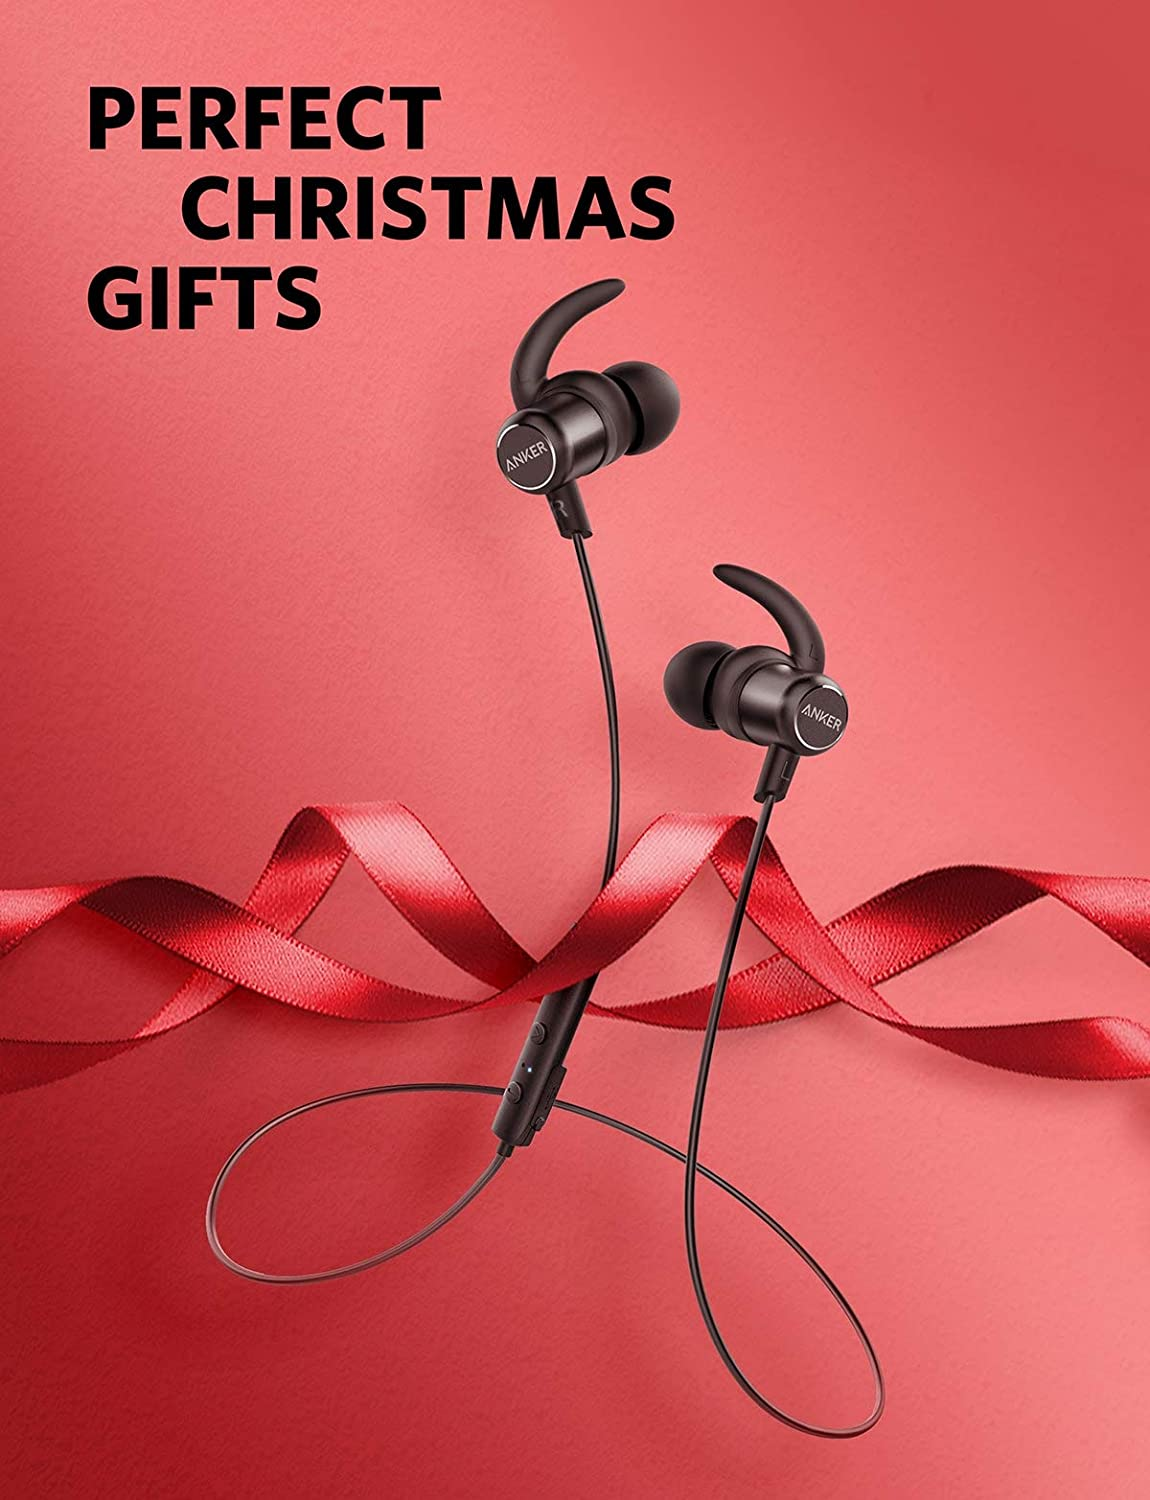 Anker Soundbuds Slim Wireless Headphones Bluetooth 41 Headset Handsfree Earbud Mini L1 Sj0048 Lightweight Stereo Ipx5 Earbuds With Magnetic Connection Nano Coating Sweatproof Sports